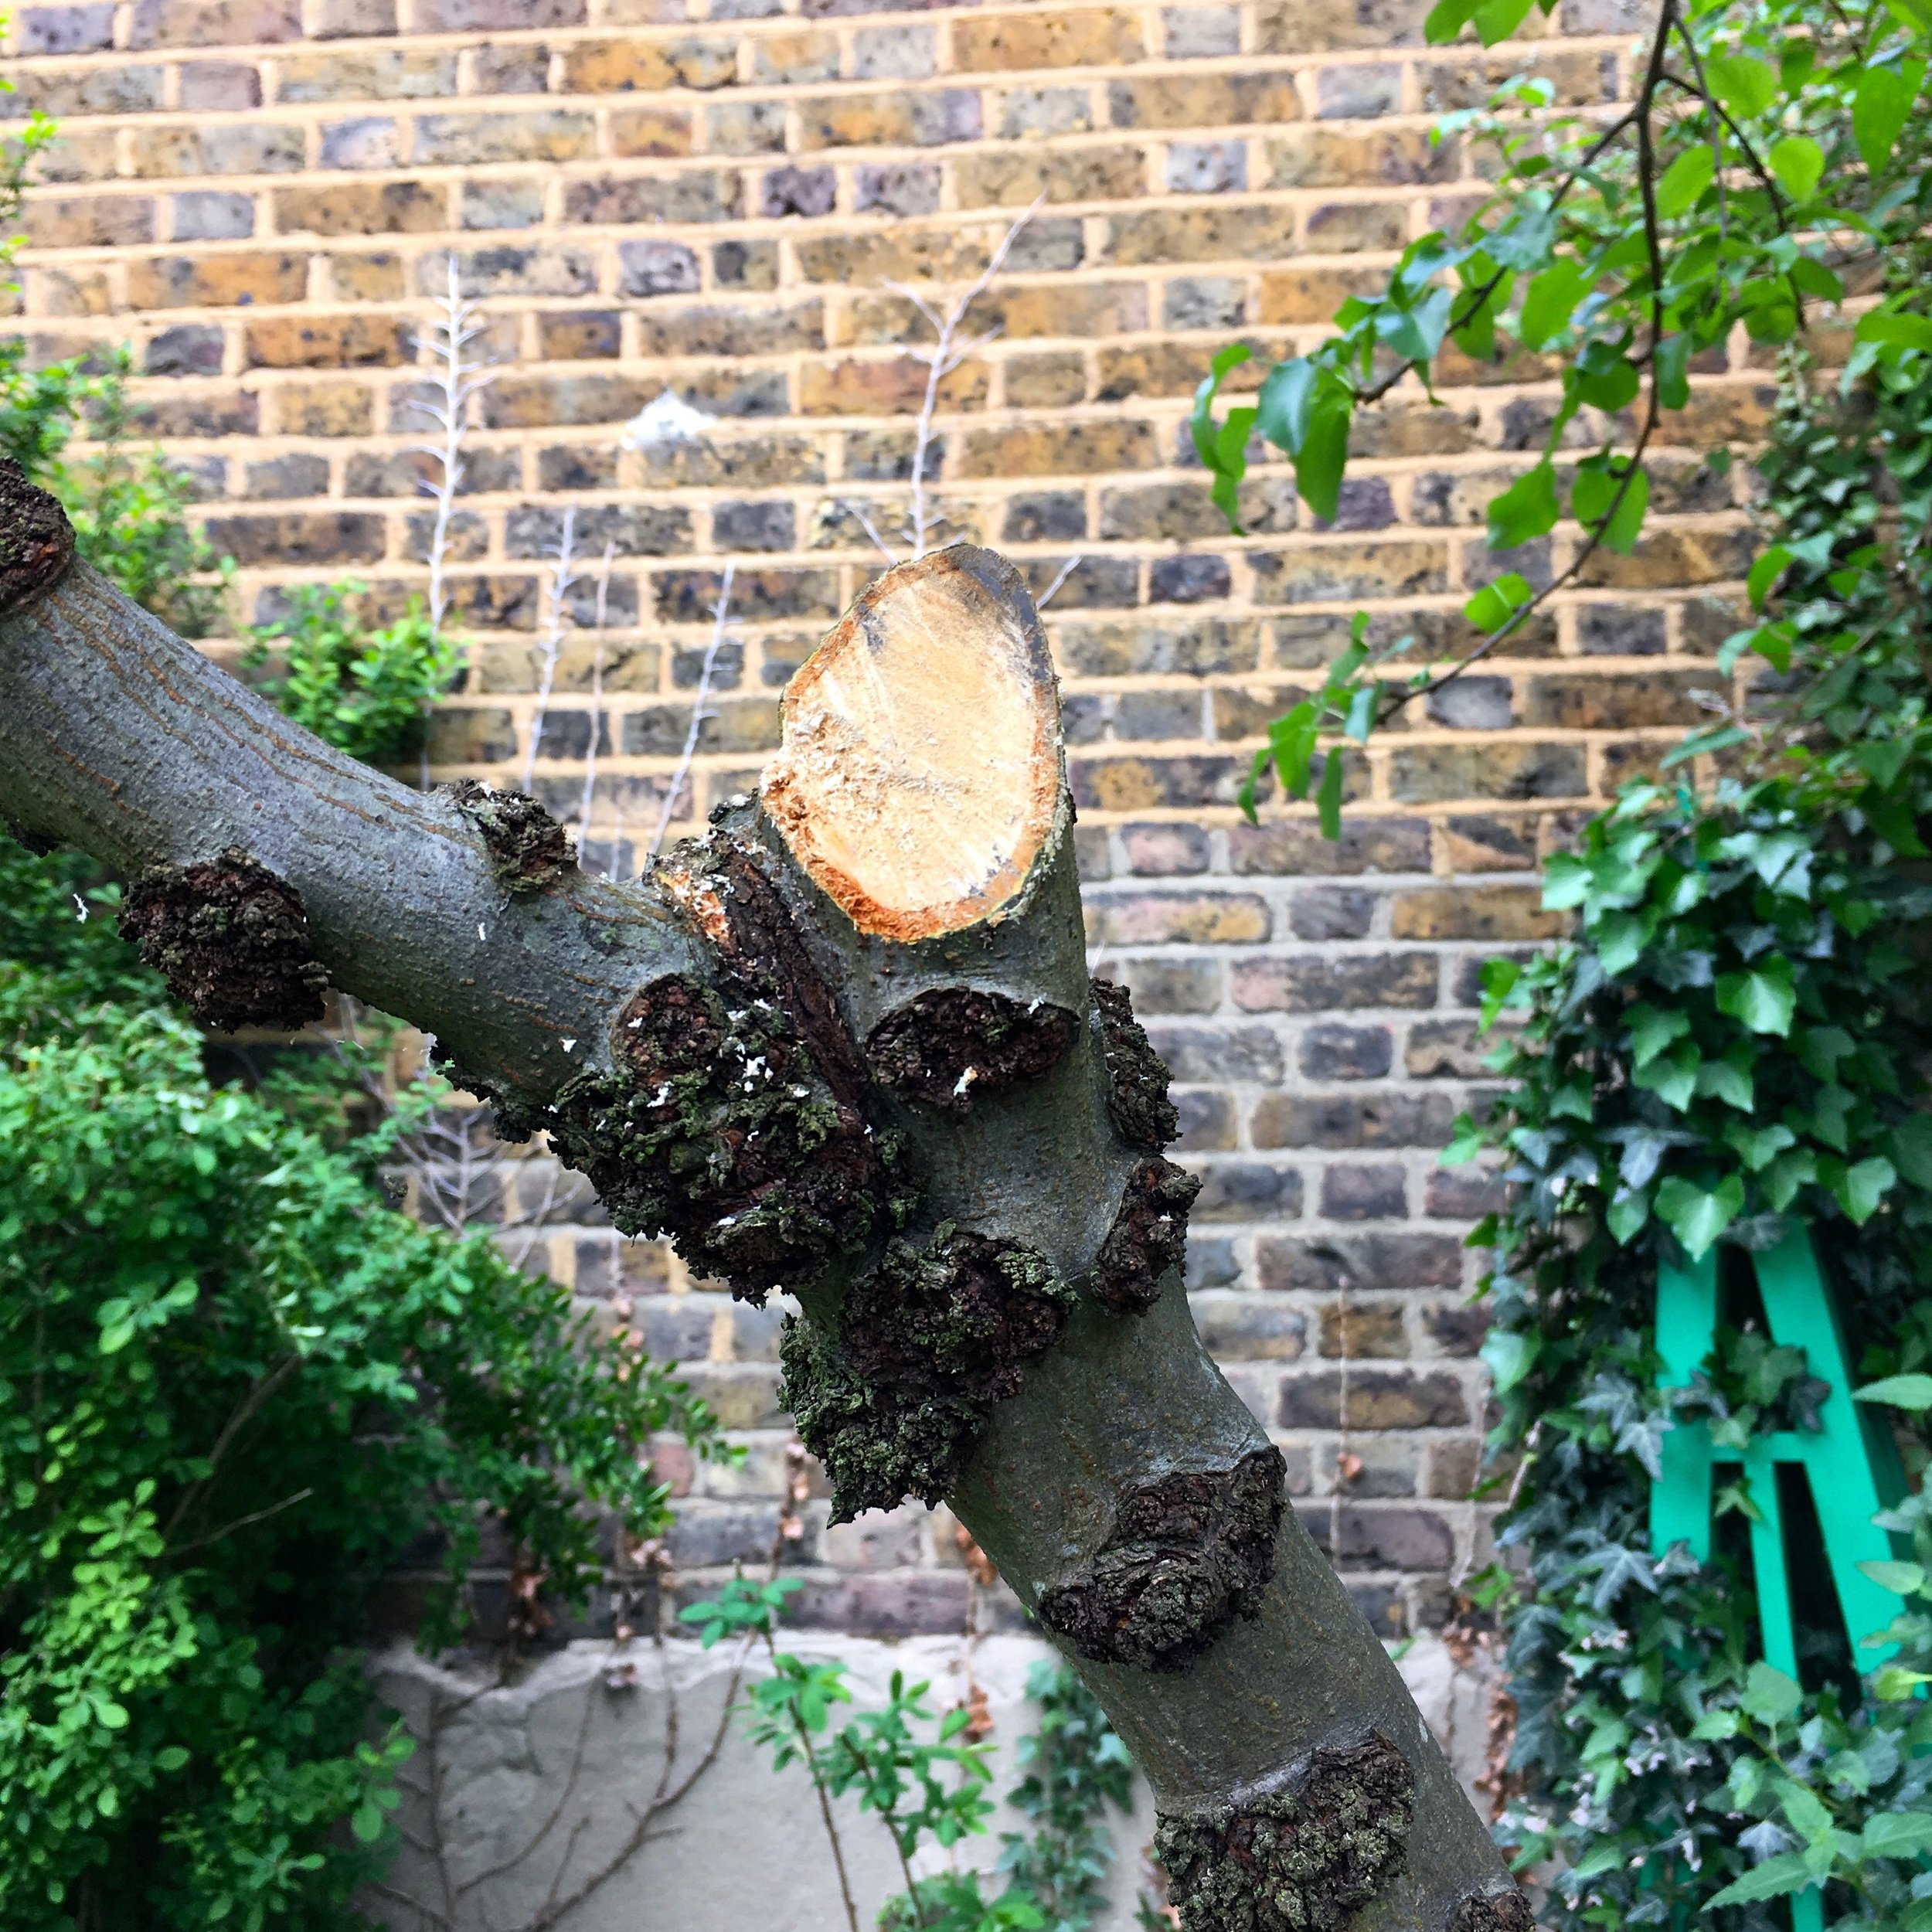 Some impromptu pruning for the pear tree, which despite this photo is looking a much better shape for it